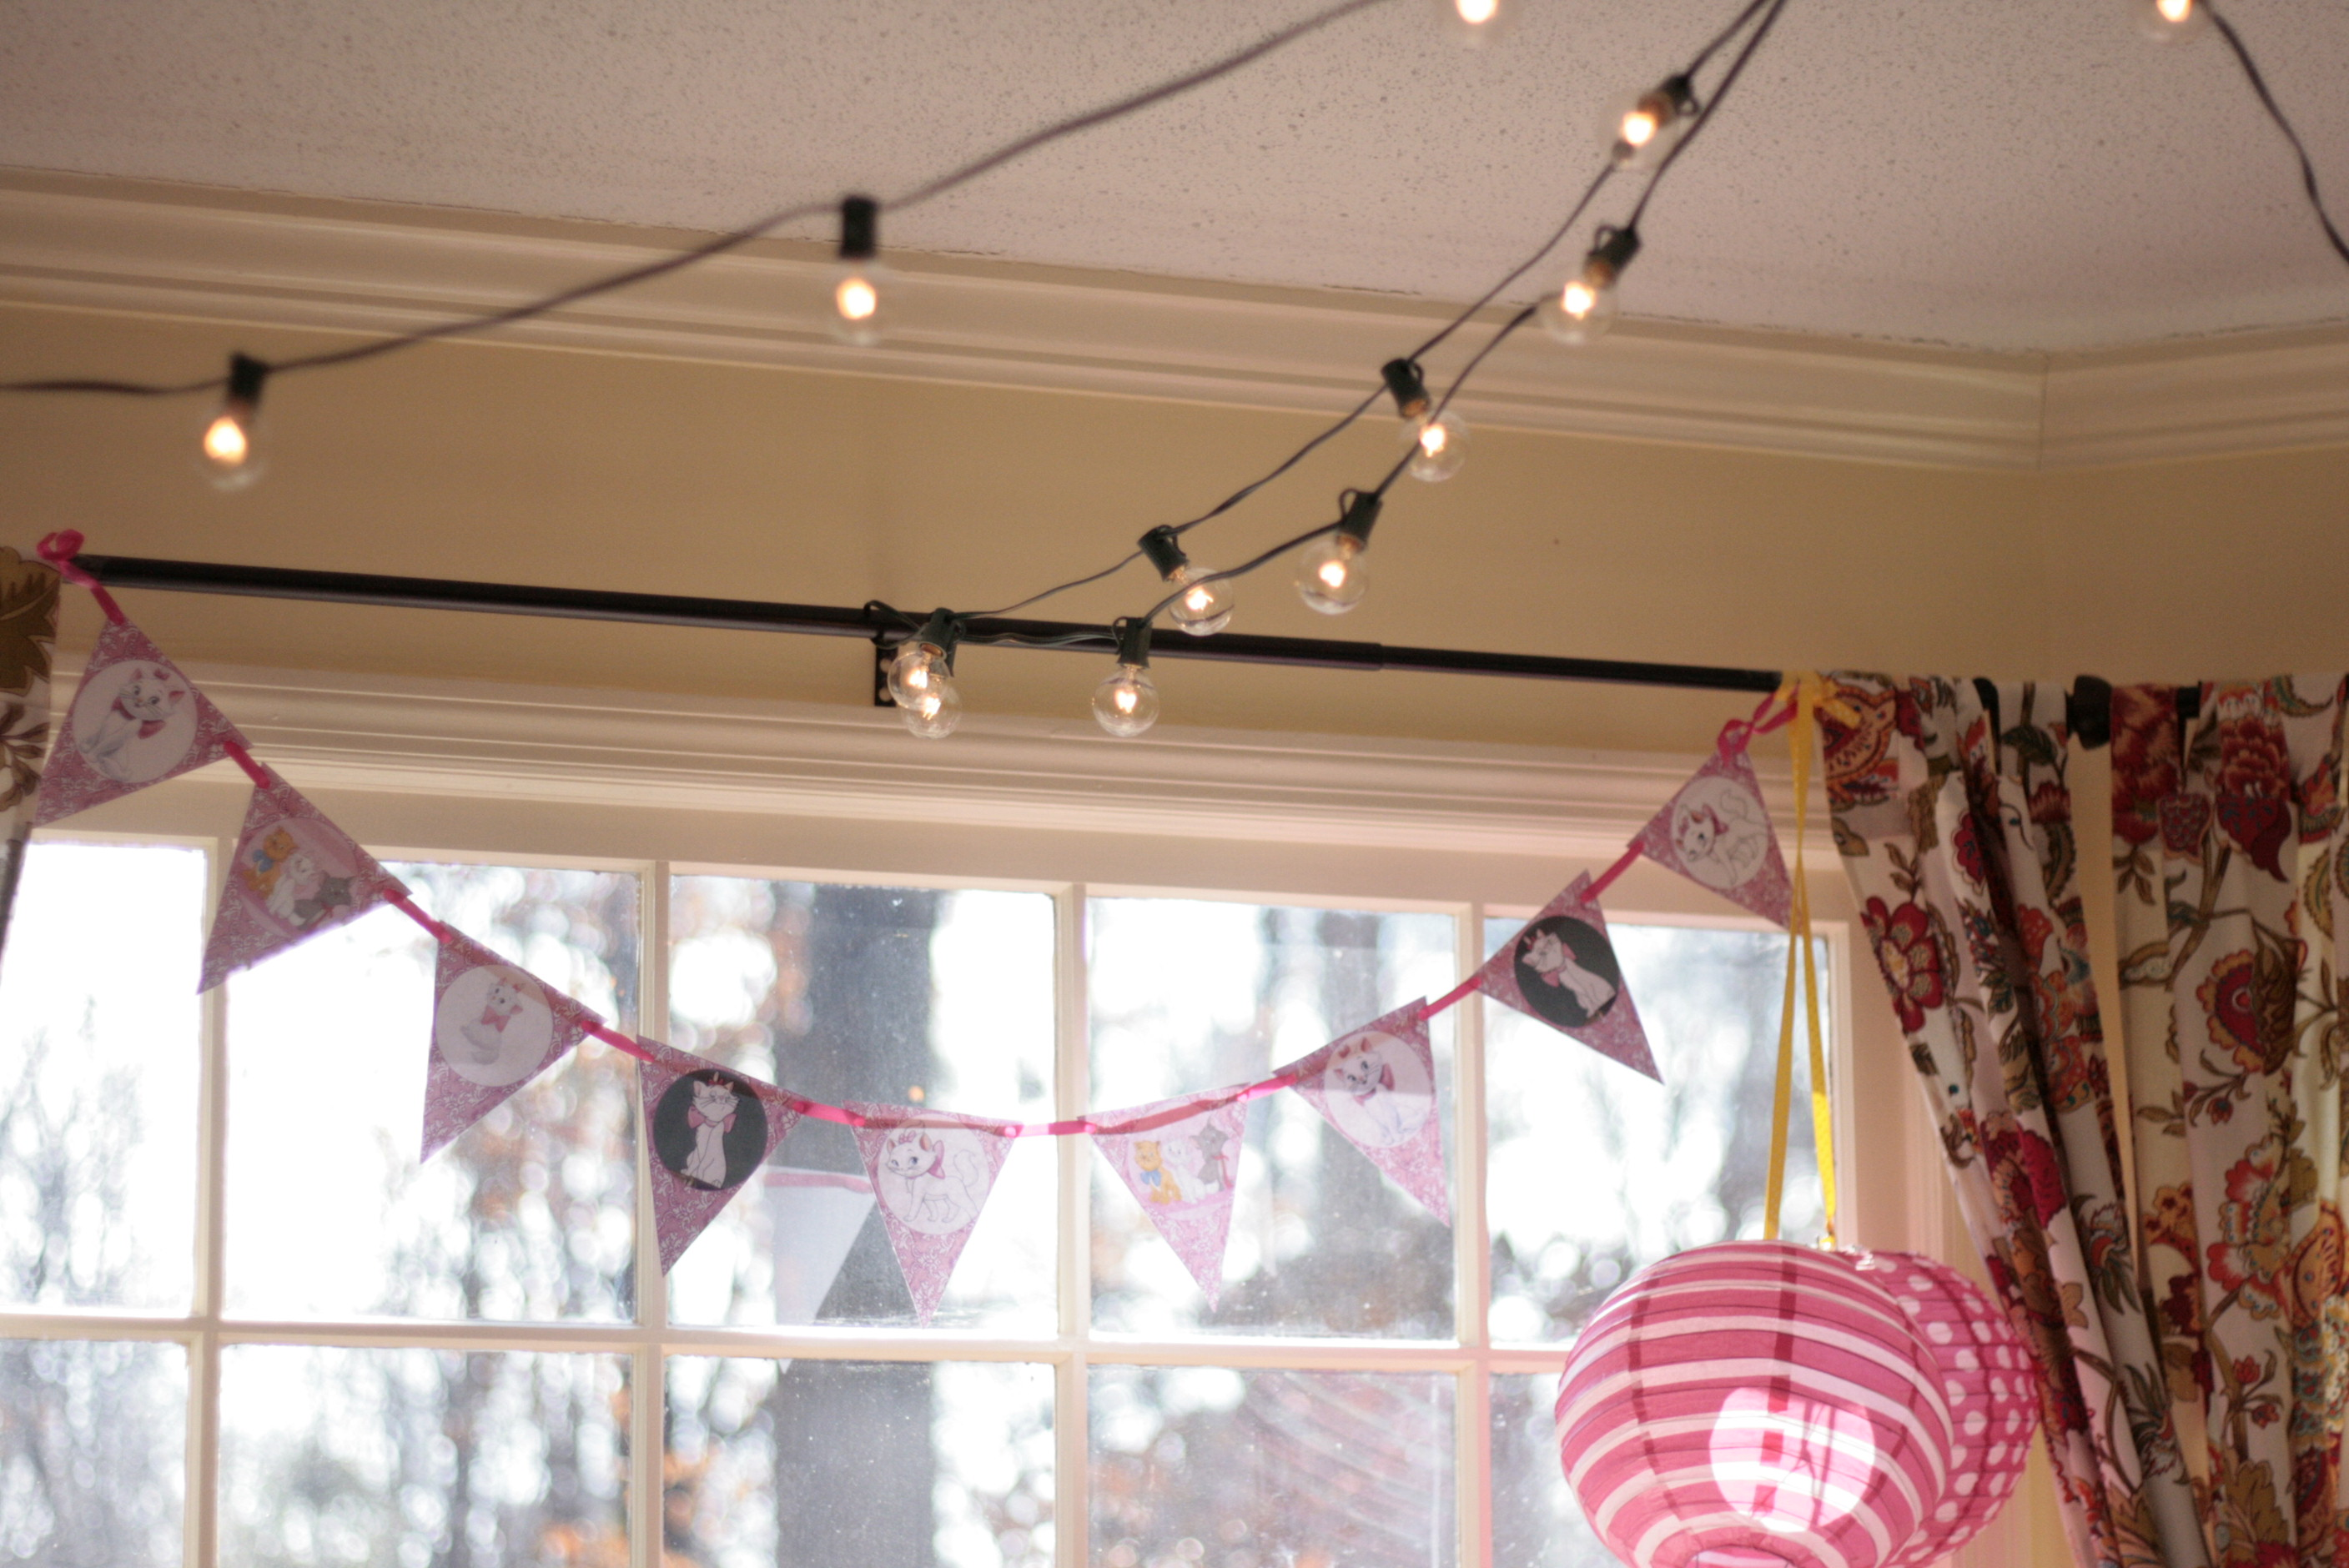 We strung lights to bring in a Paris Cafe look. The birthday girl certainly loved them!